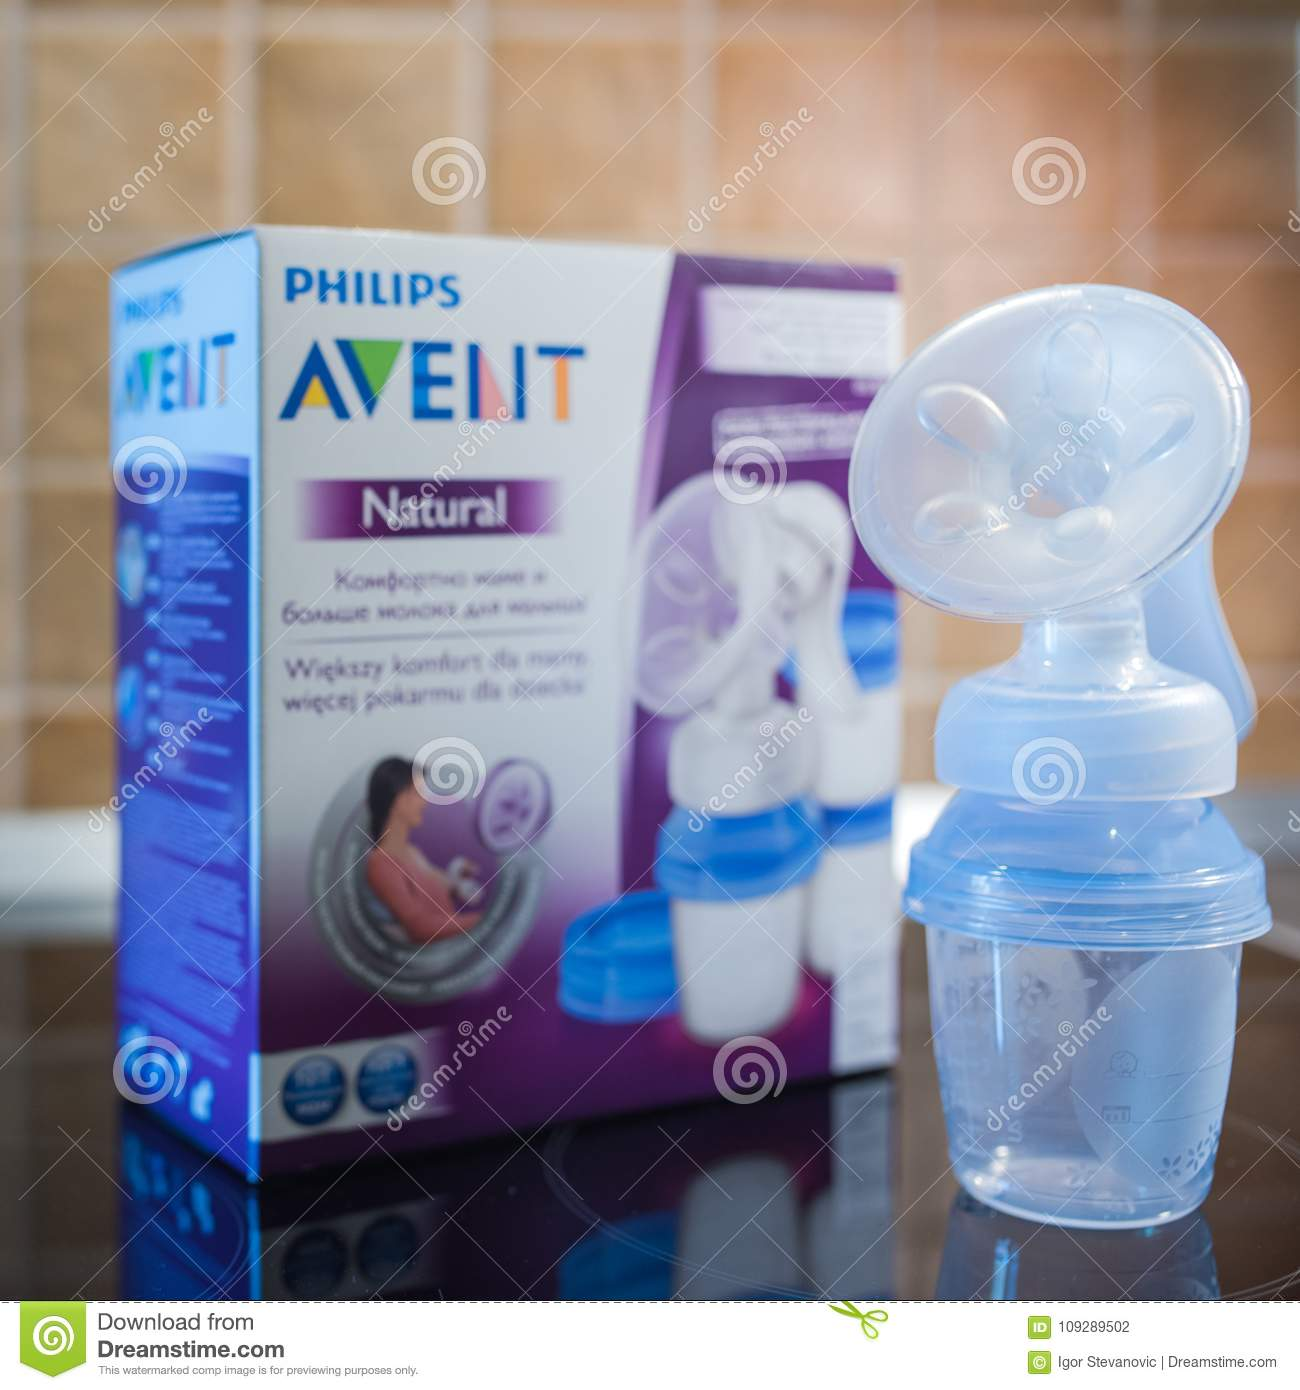 Philips Avent Manual Breast Pump Editorial Photography Image Of